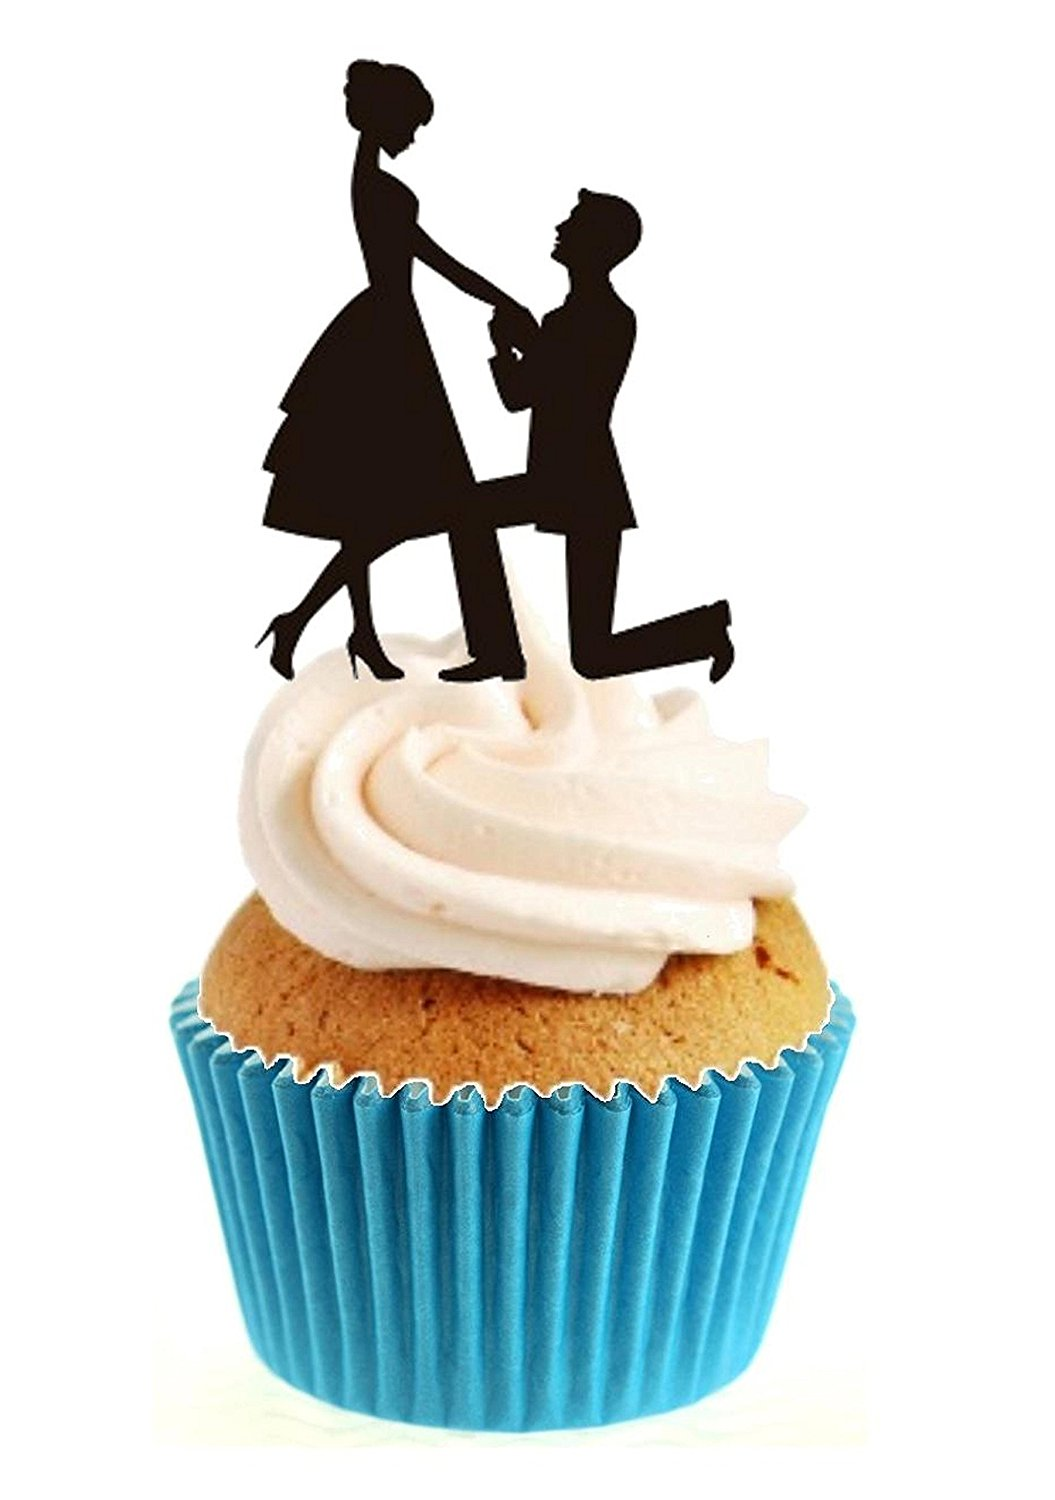 1055x1500 Novelty Engagement Romance Proposal Silhouette 12 Edible Stand up